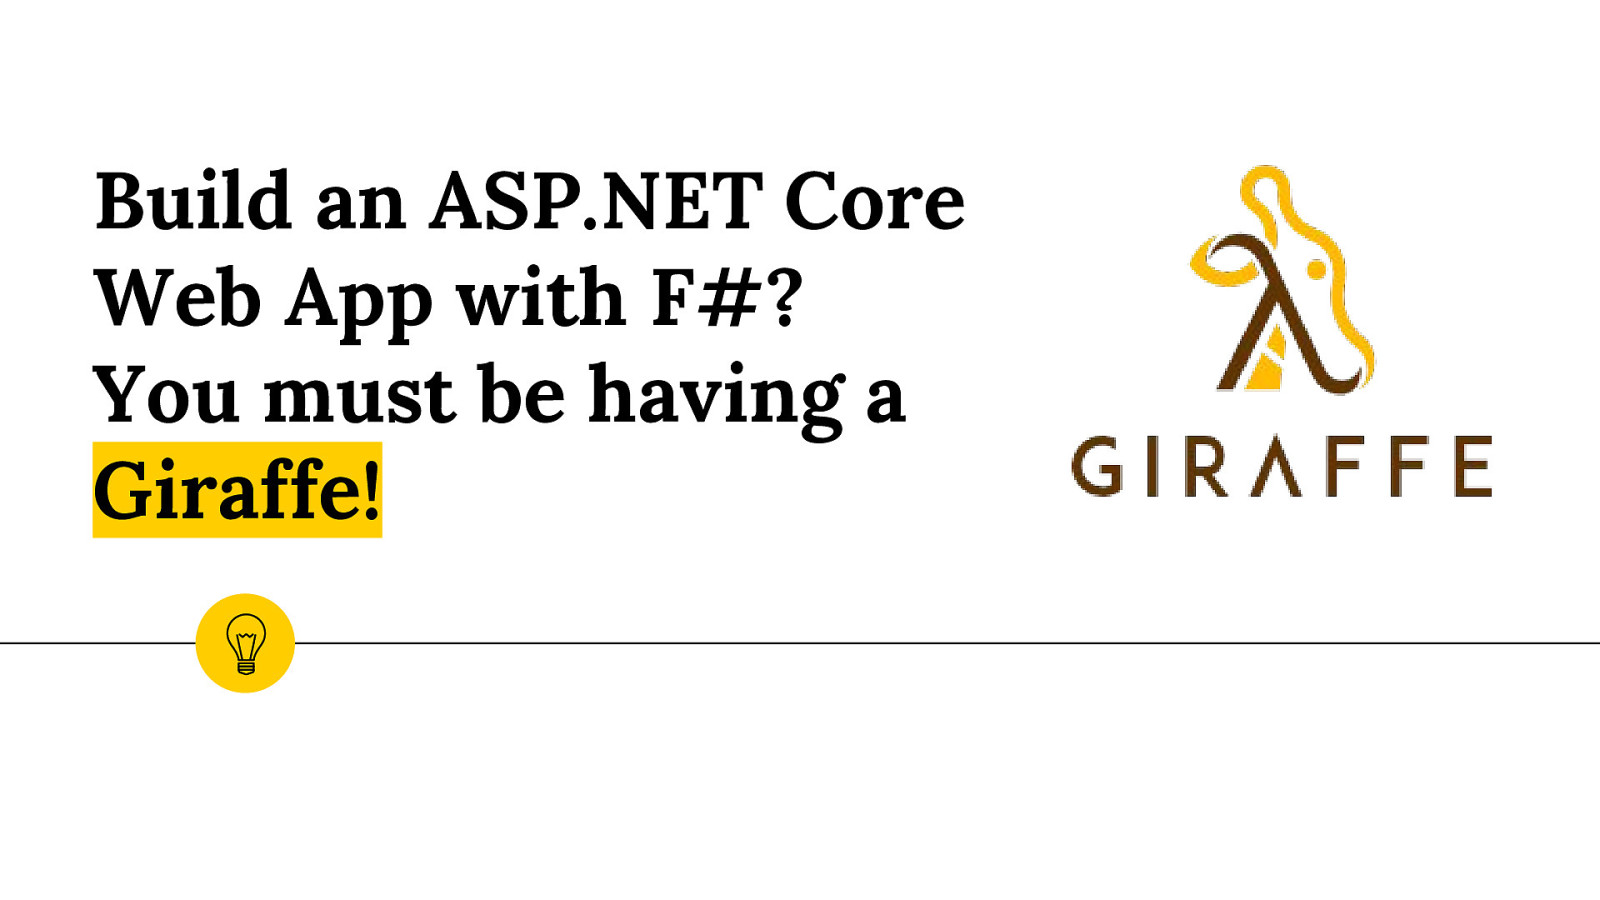 Lightning Talk: Build an ASP.NET Core Web App with F#? You must be having a Giraffe!